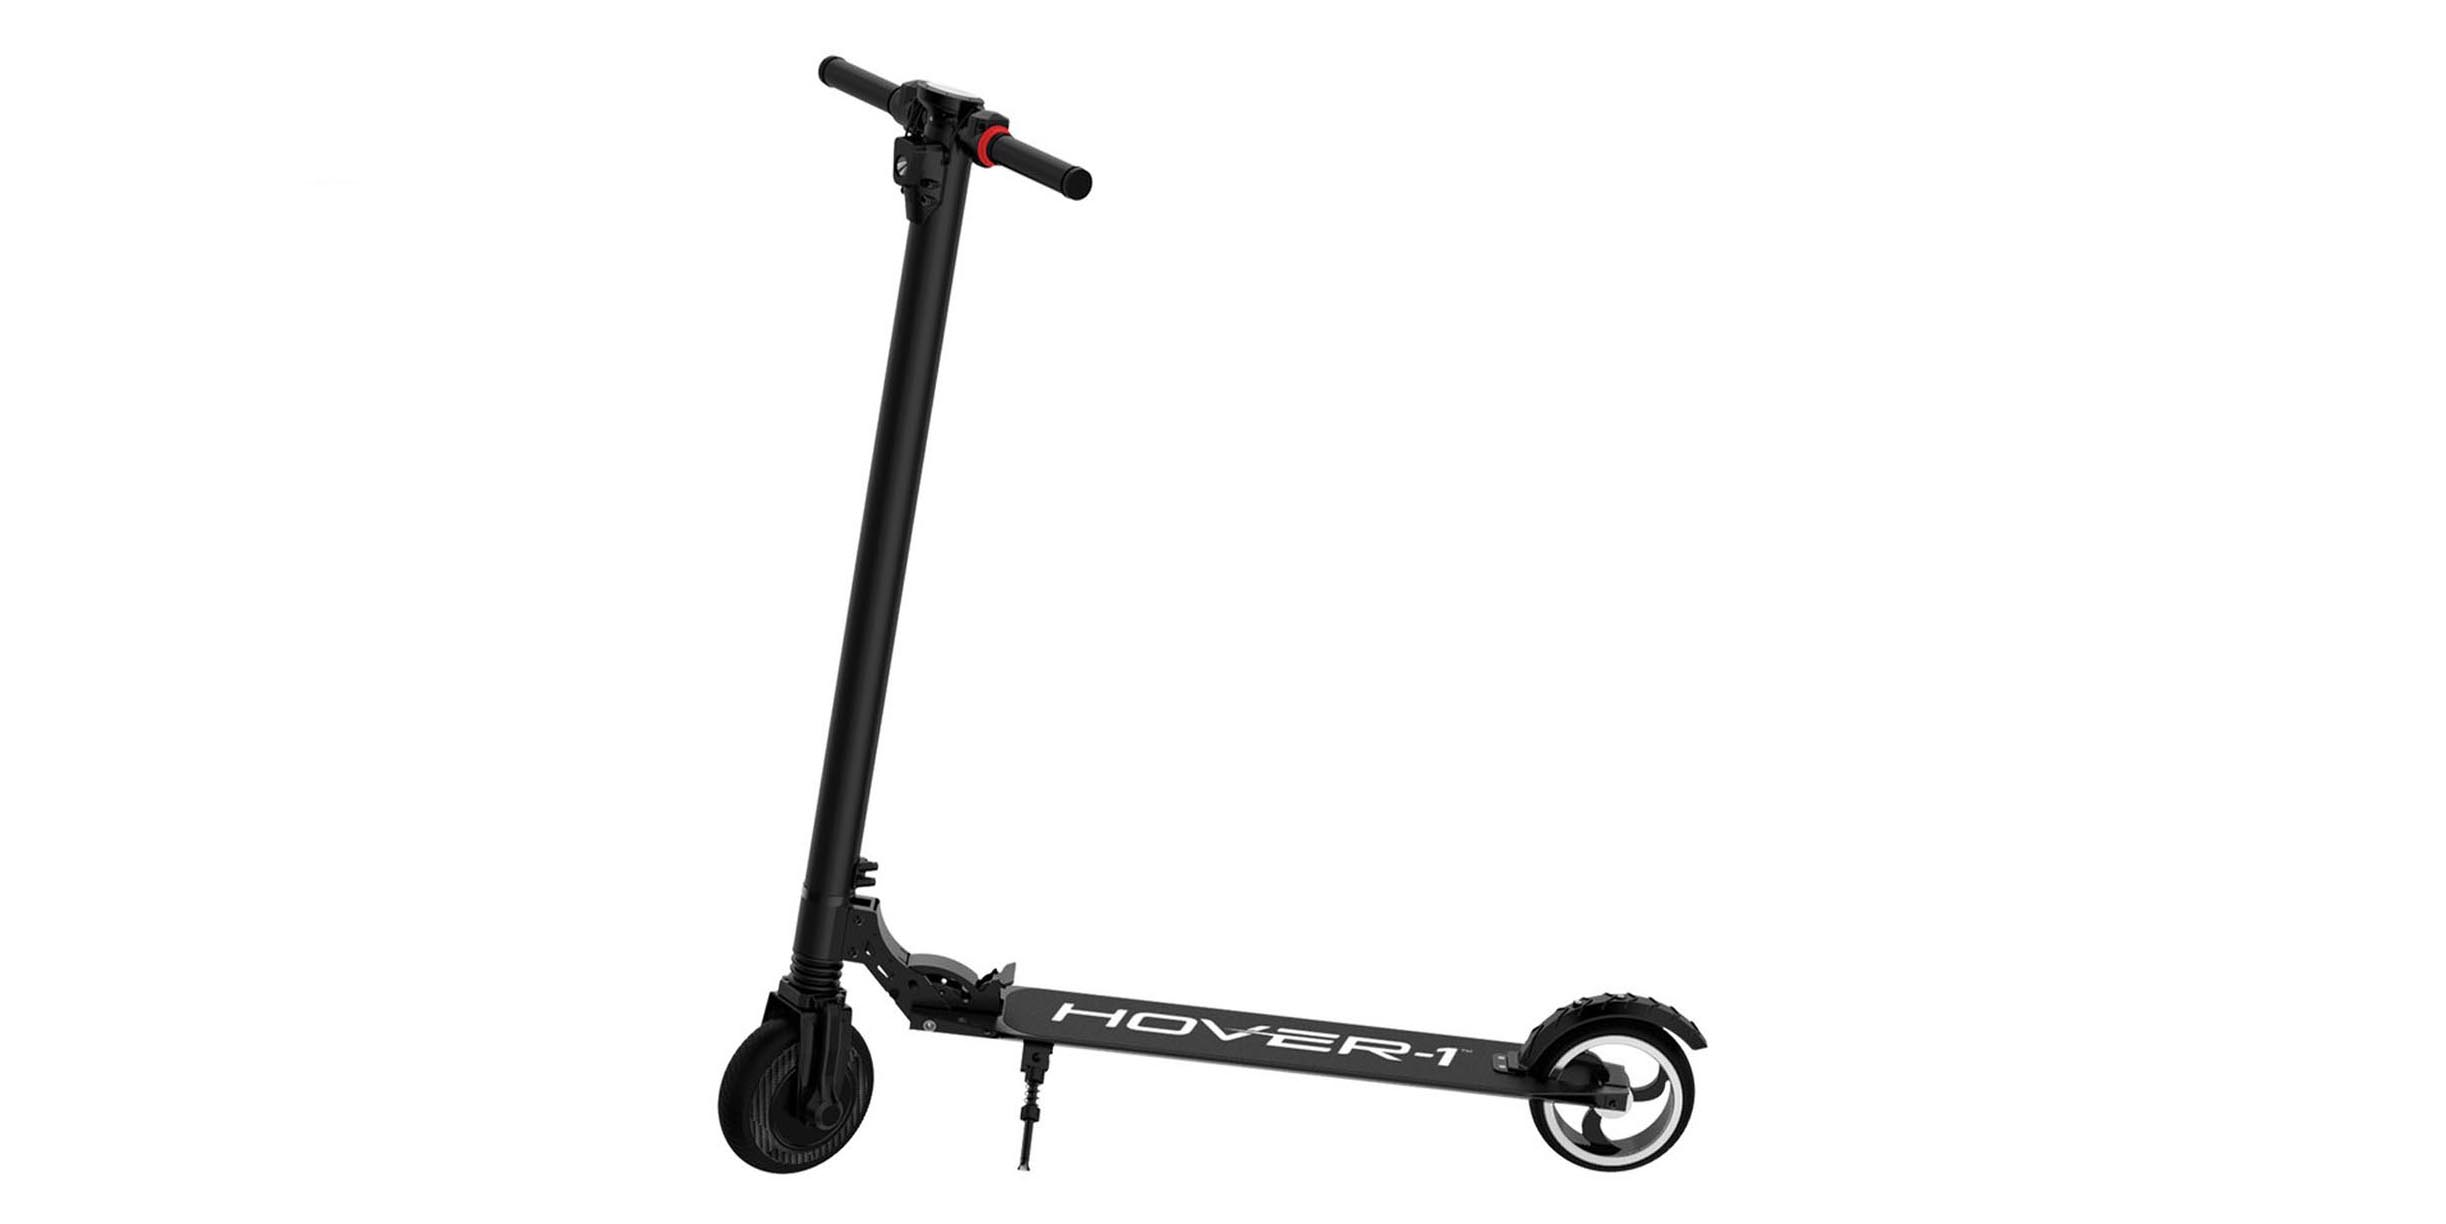 Hover's electric scooter is 50% off at $149 in today's